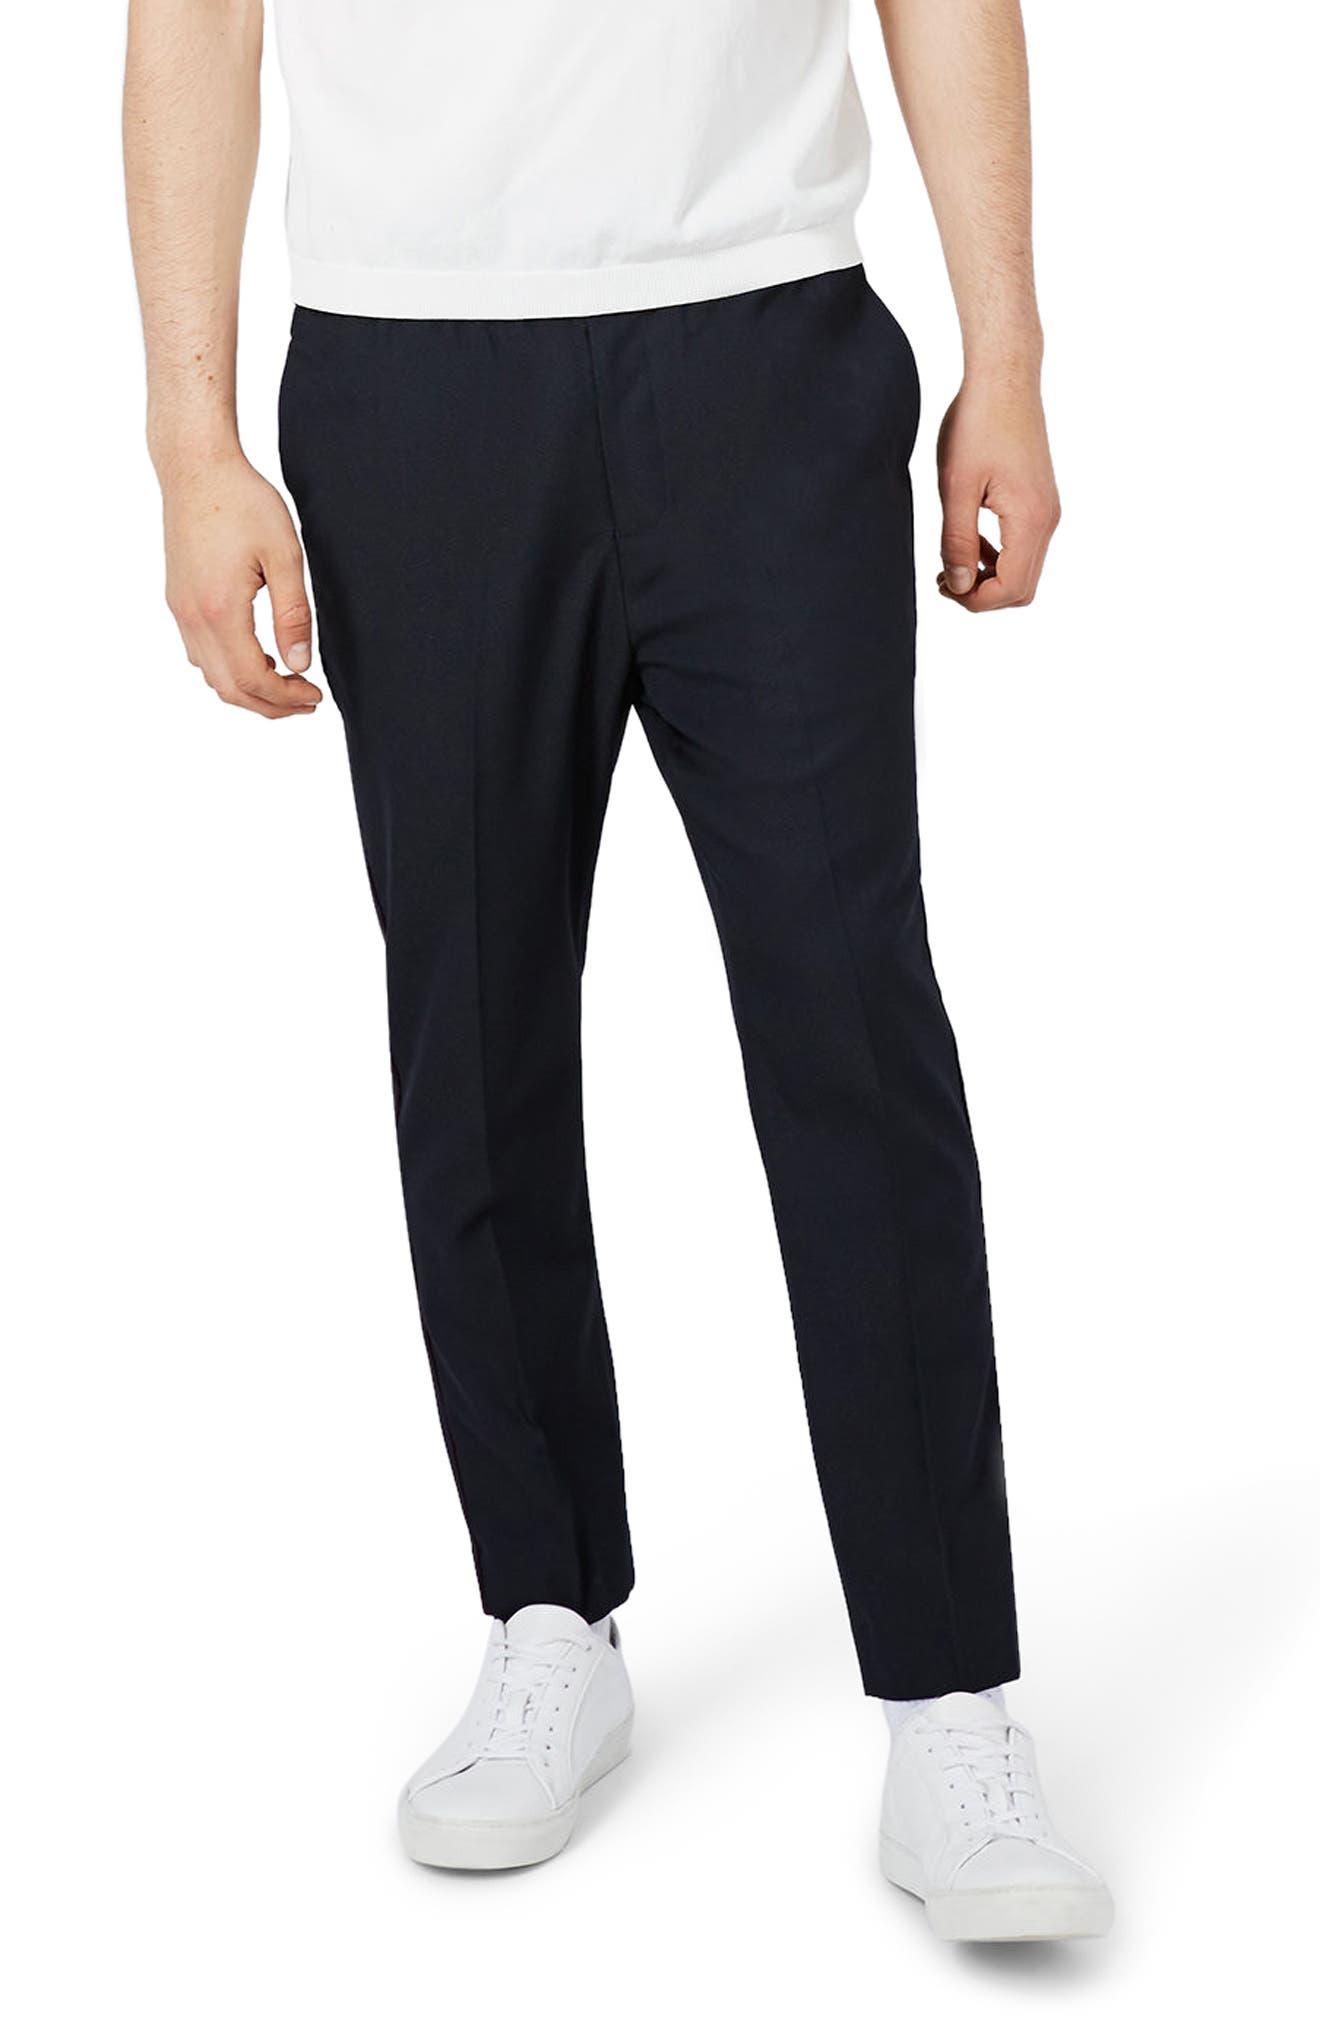 Topman Piped Crop Jogger Pants